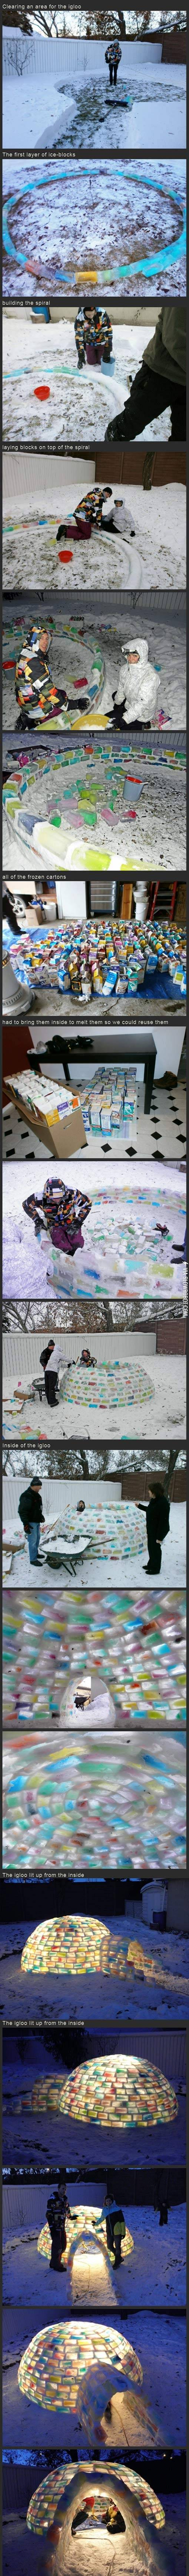 The world's most awesome igloo